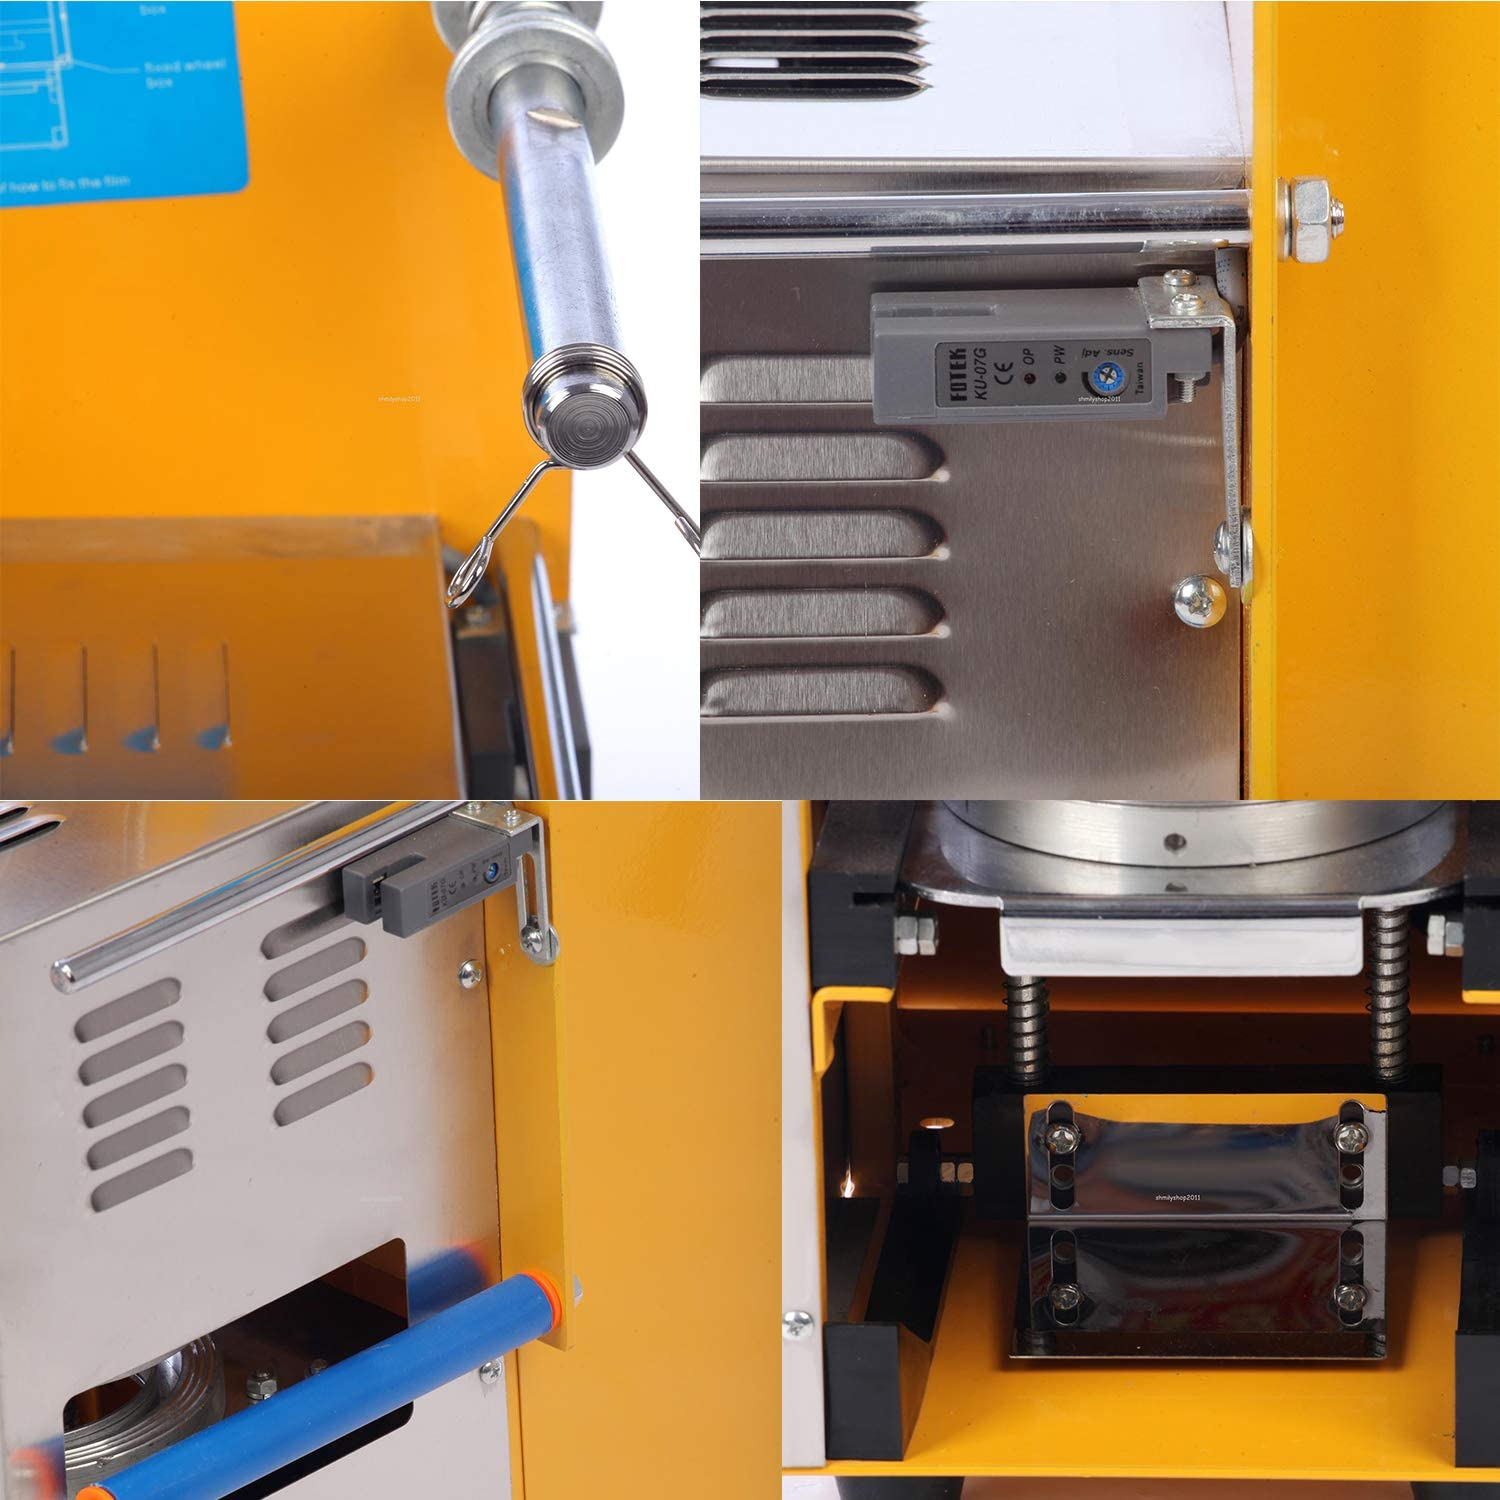 Cup Sealing Machine For Bubble Tea Automatic Plastic Cup Sealer 400-600Cups/hr Electric 400w (Automatic) Fully Automatic